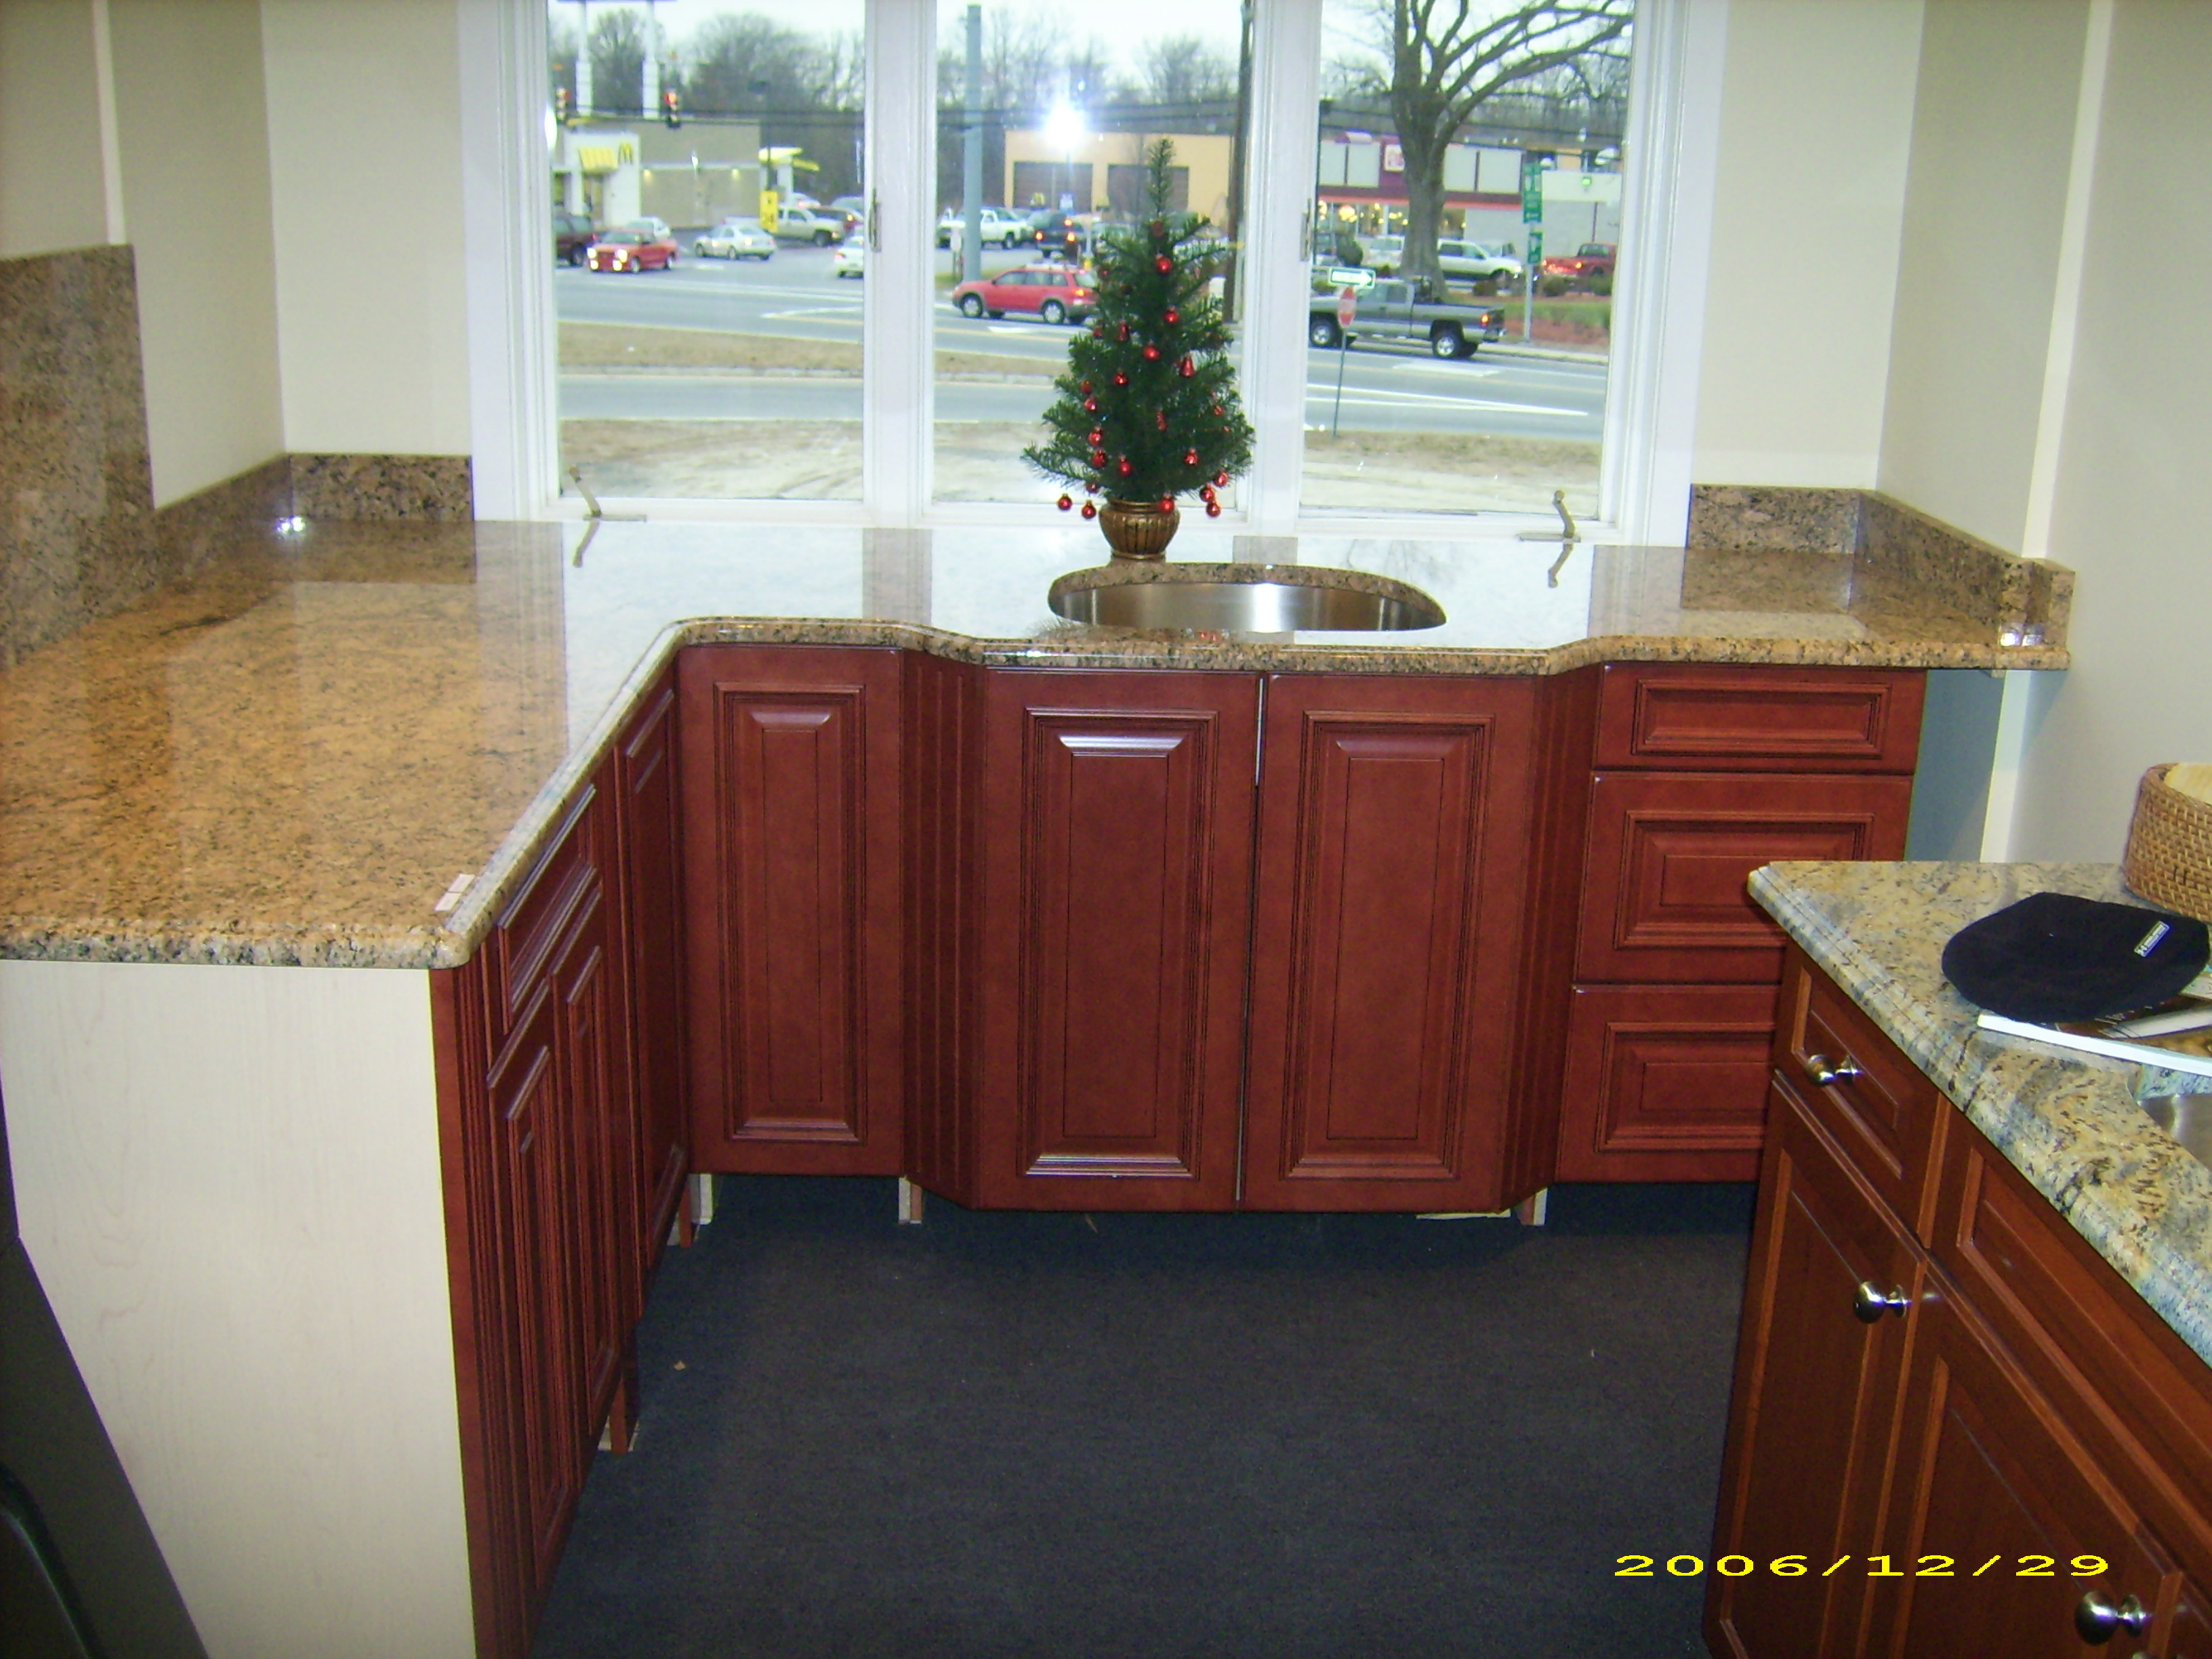 showroom kitchen1